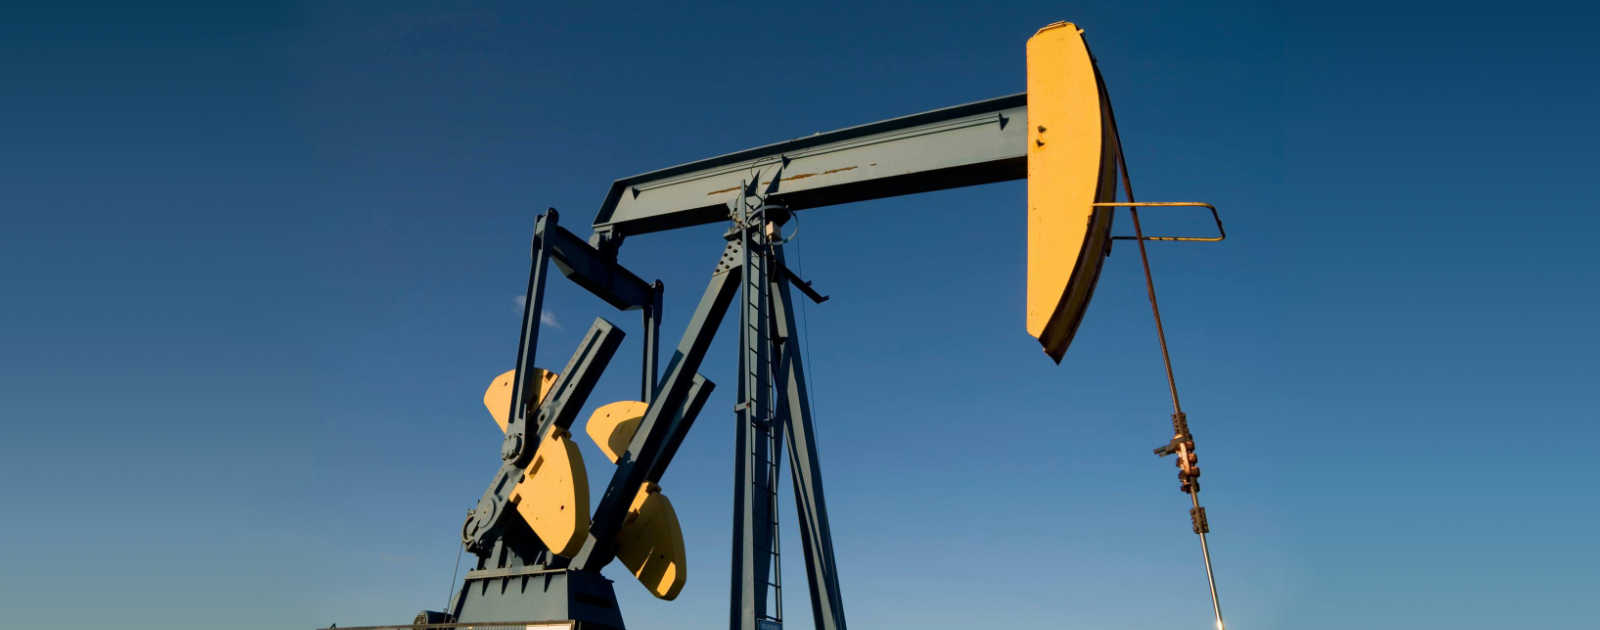 Oil and Gas Equipment Leasing | Great Rates | Equipment Leases